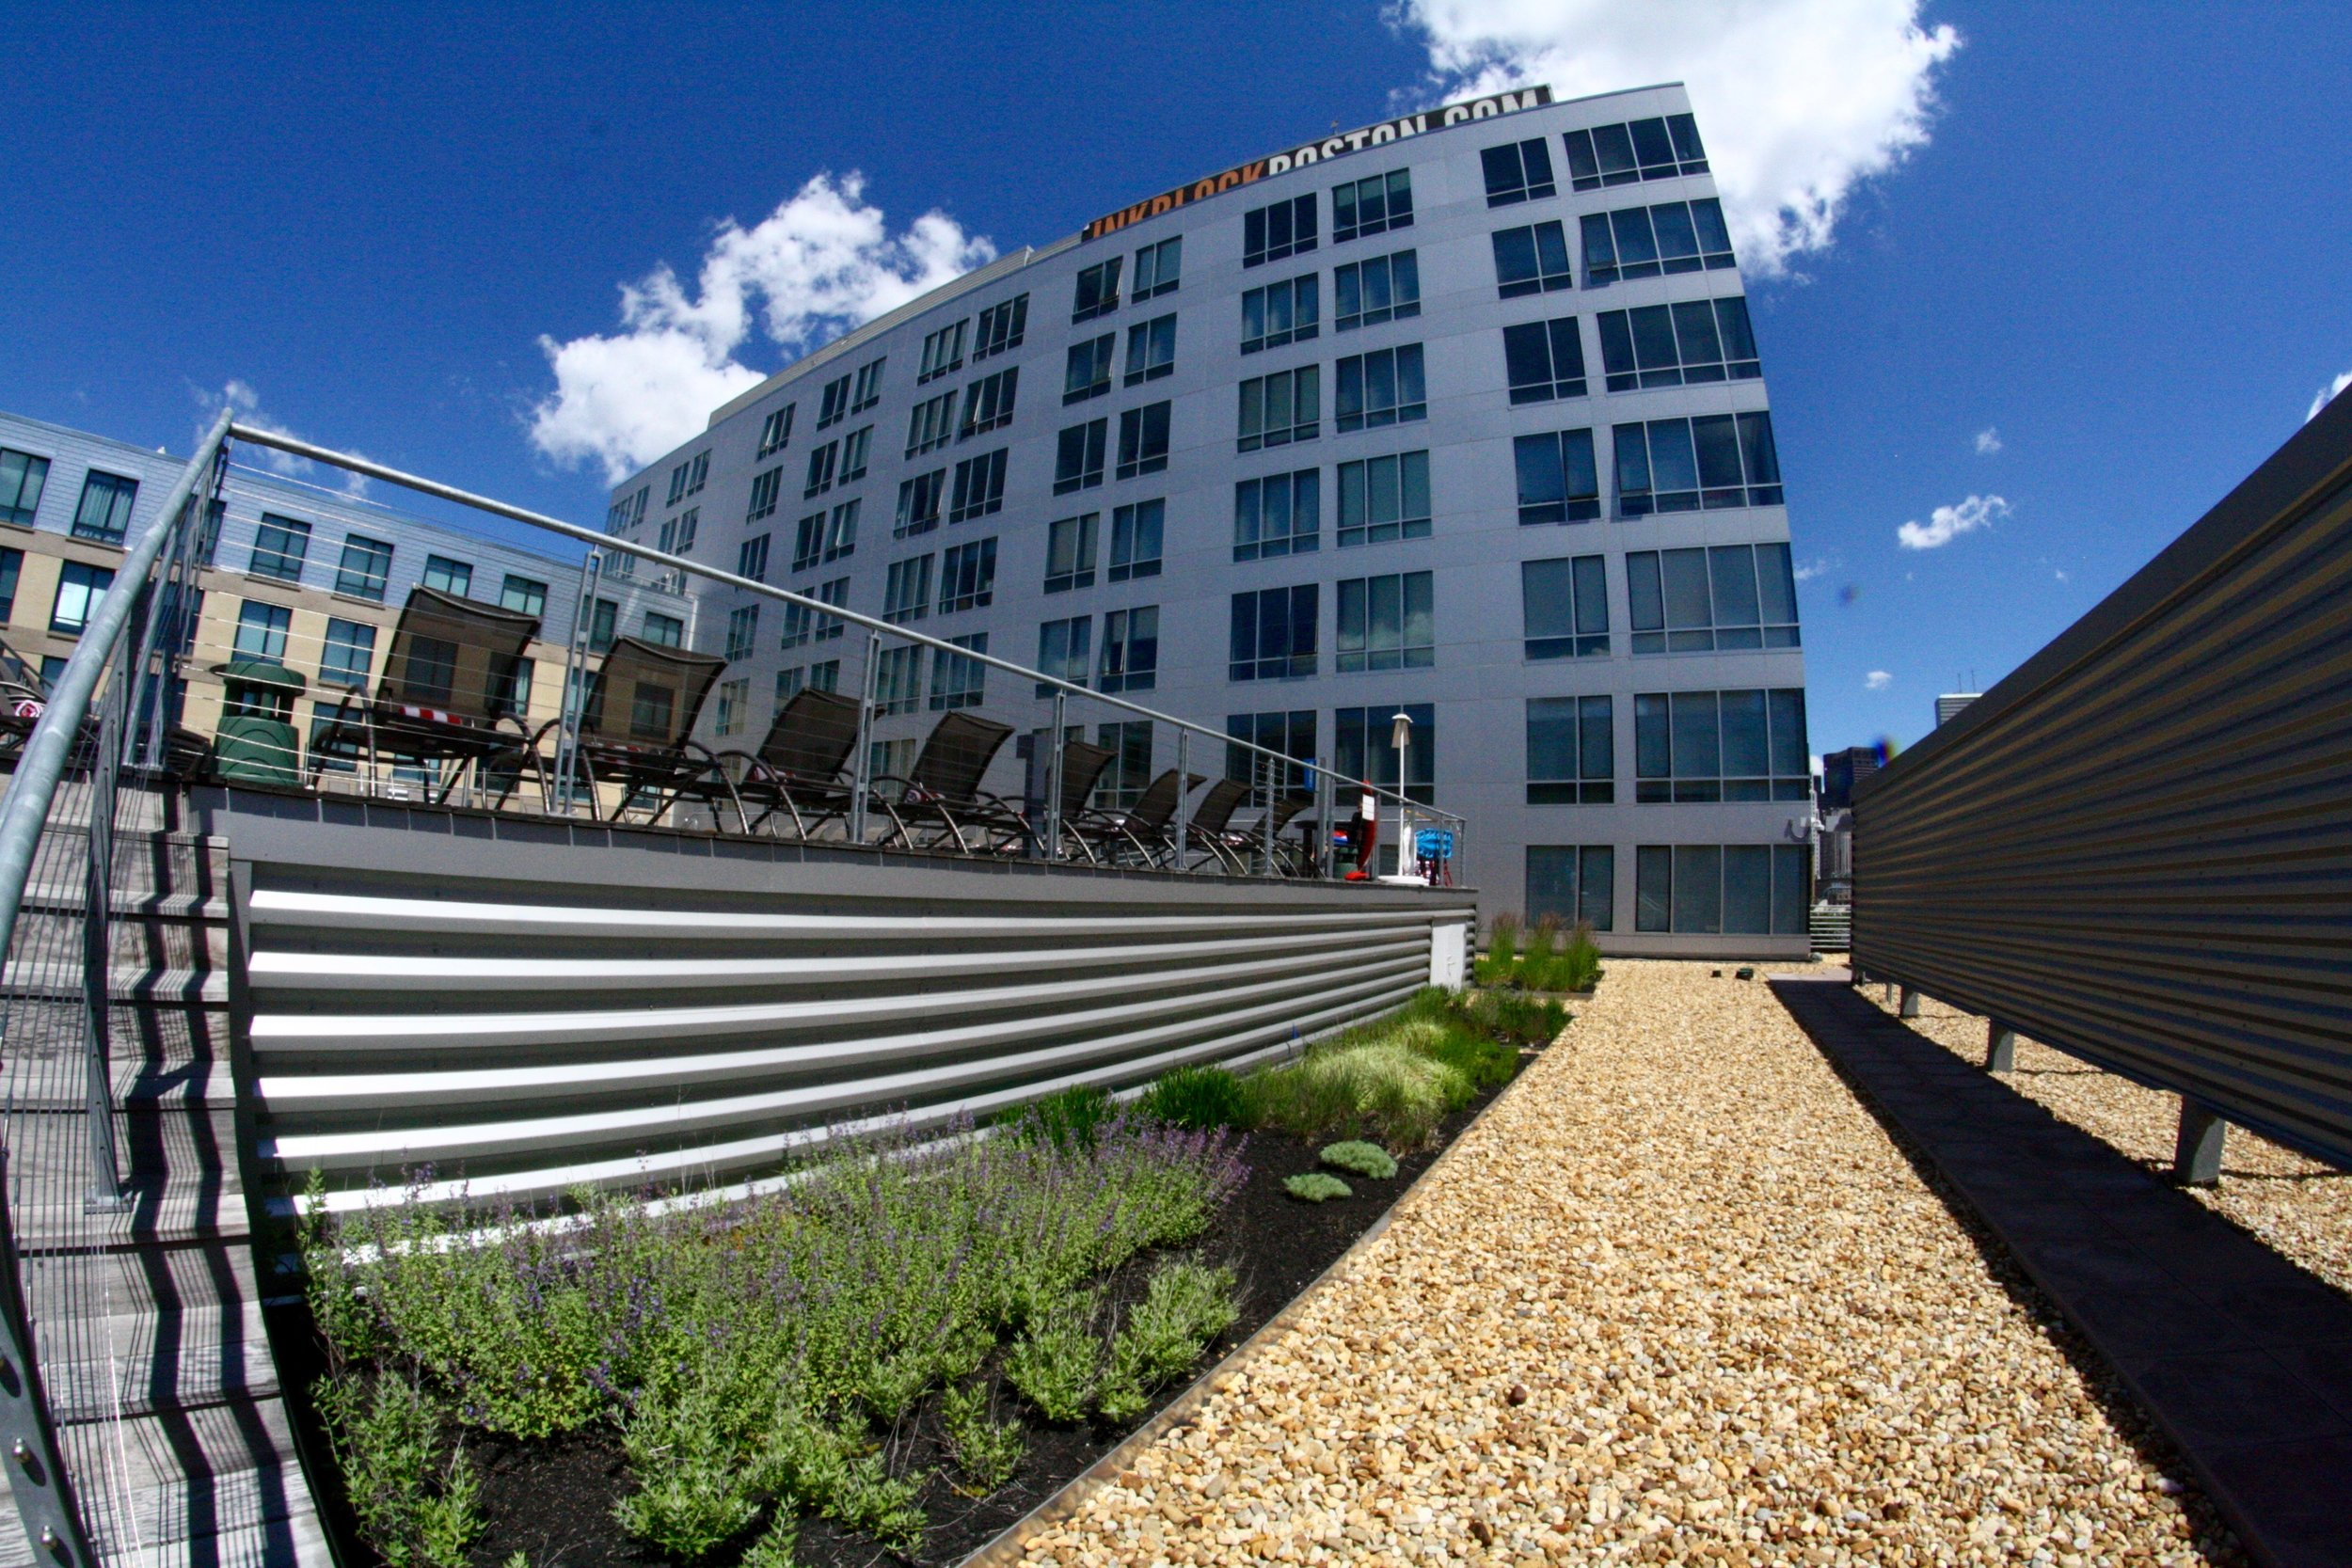 recover-green-roofs-ink-block-roof-lounge-2014-10.jpg